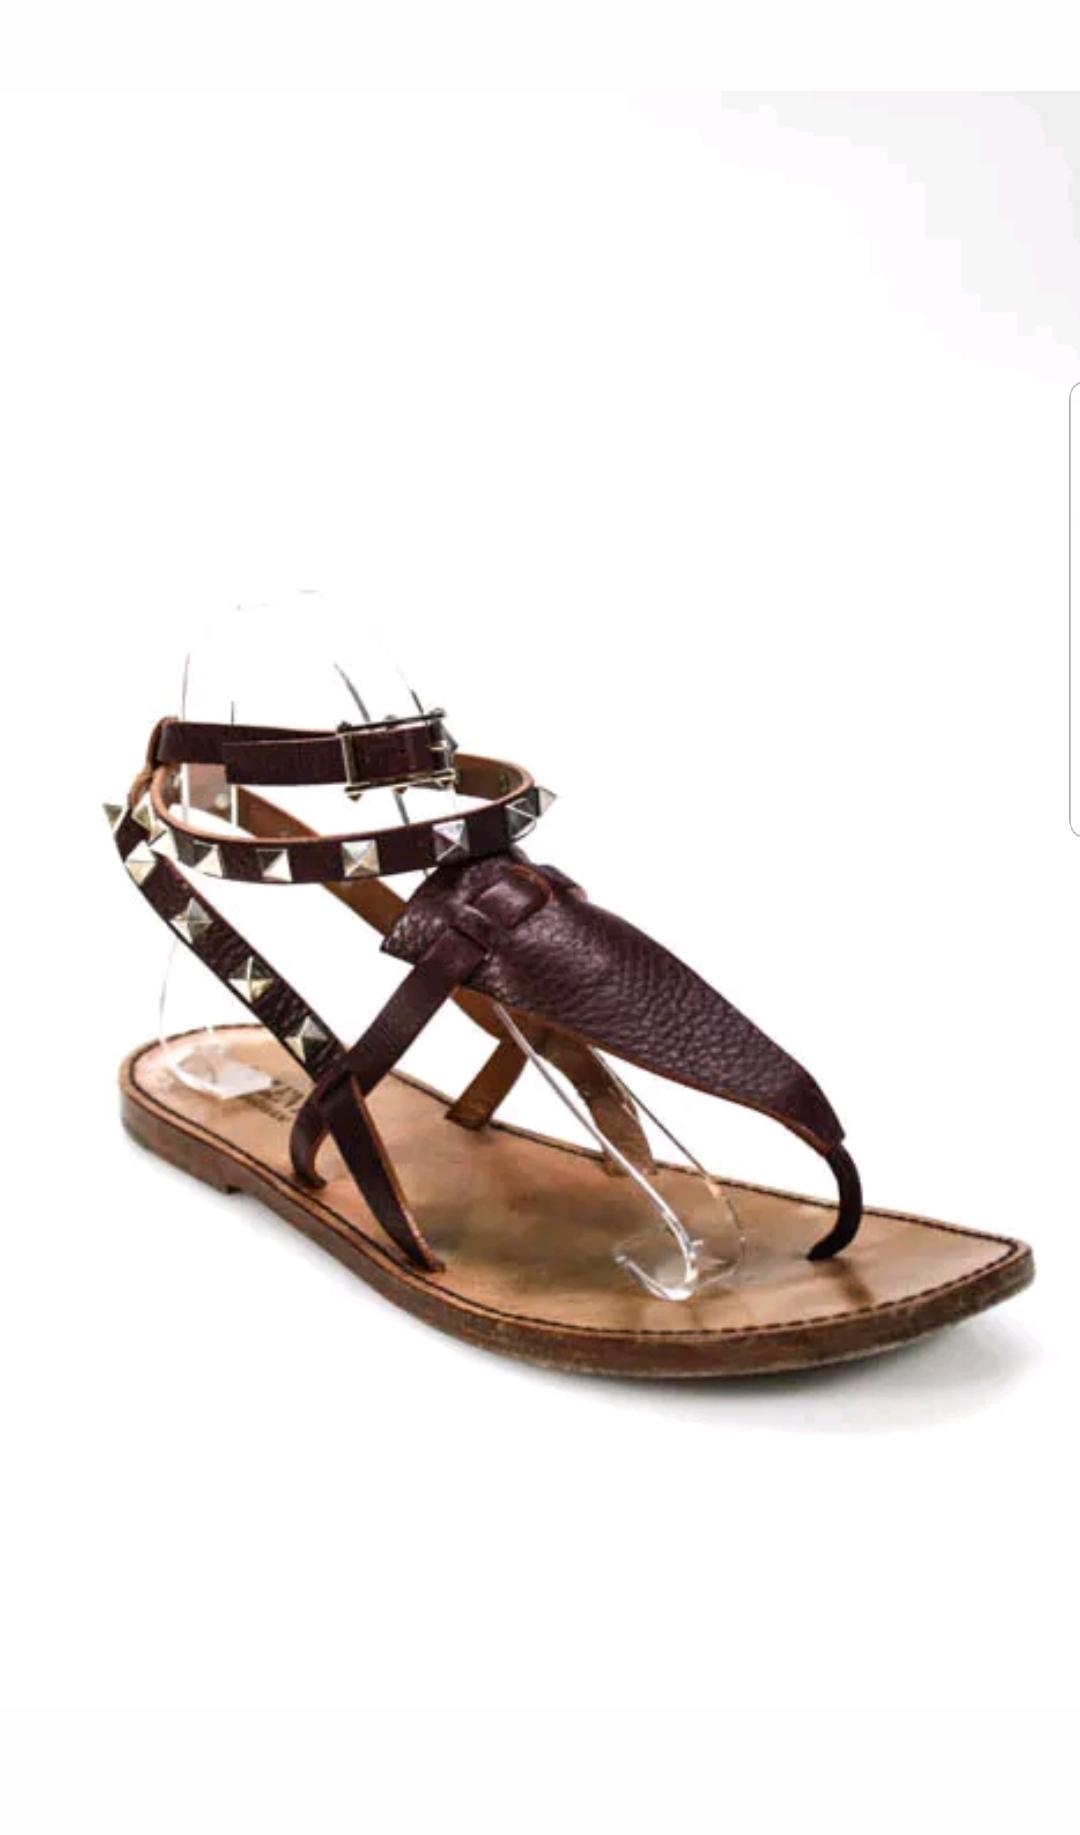 d40ed6e5eb4 Valentino Brown Rockstud Gladiator Leather Sandals - Flats Size Size Size  EU 39 (Approx.